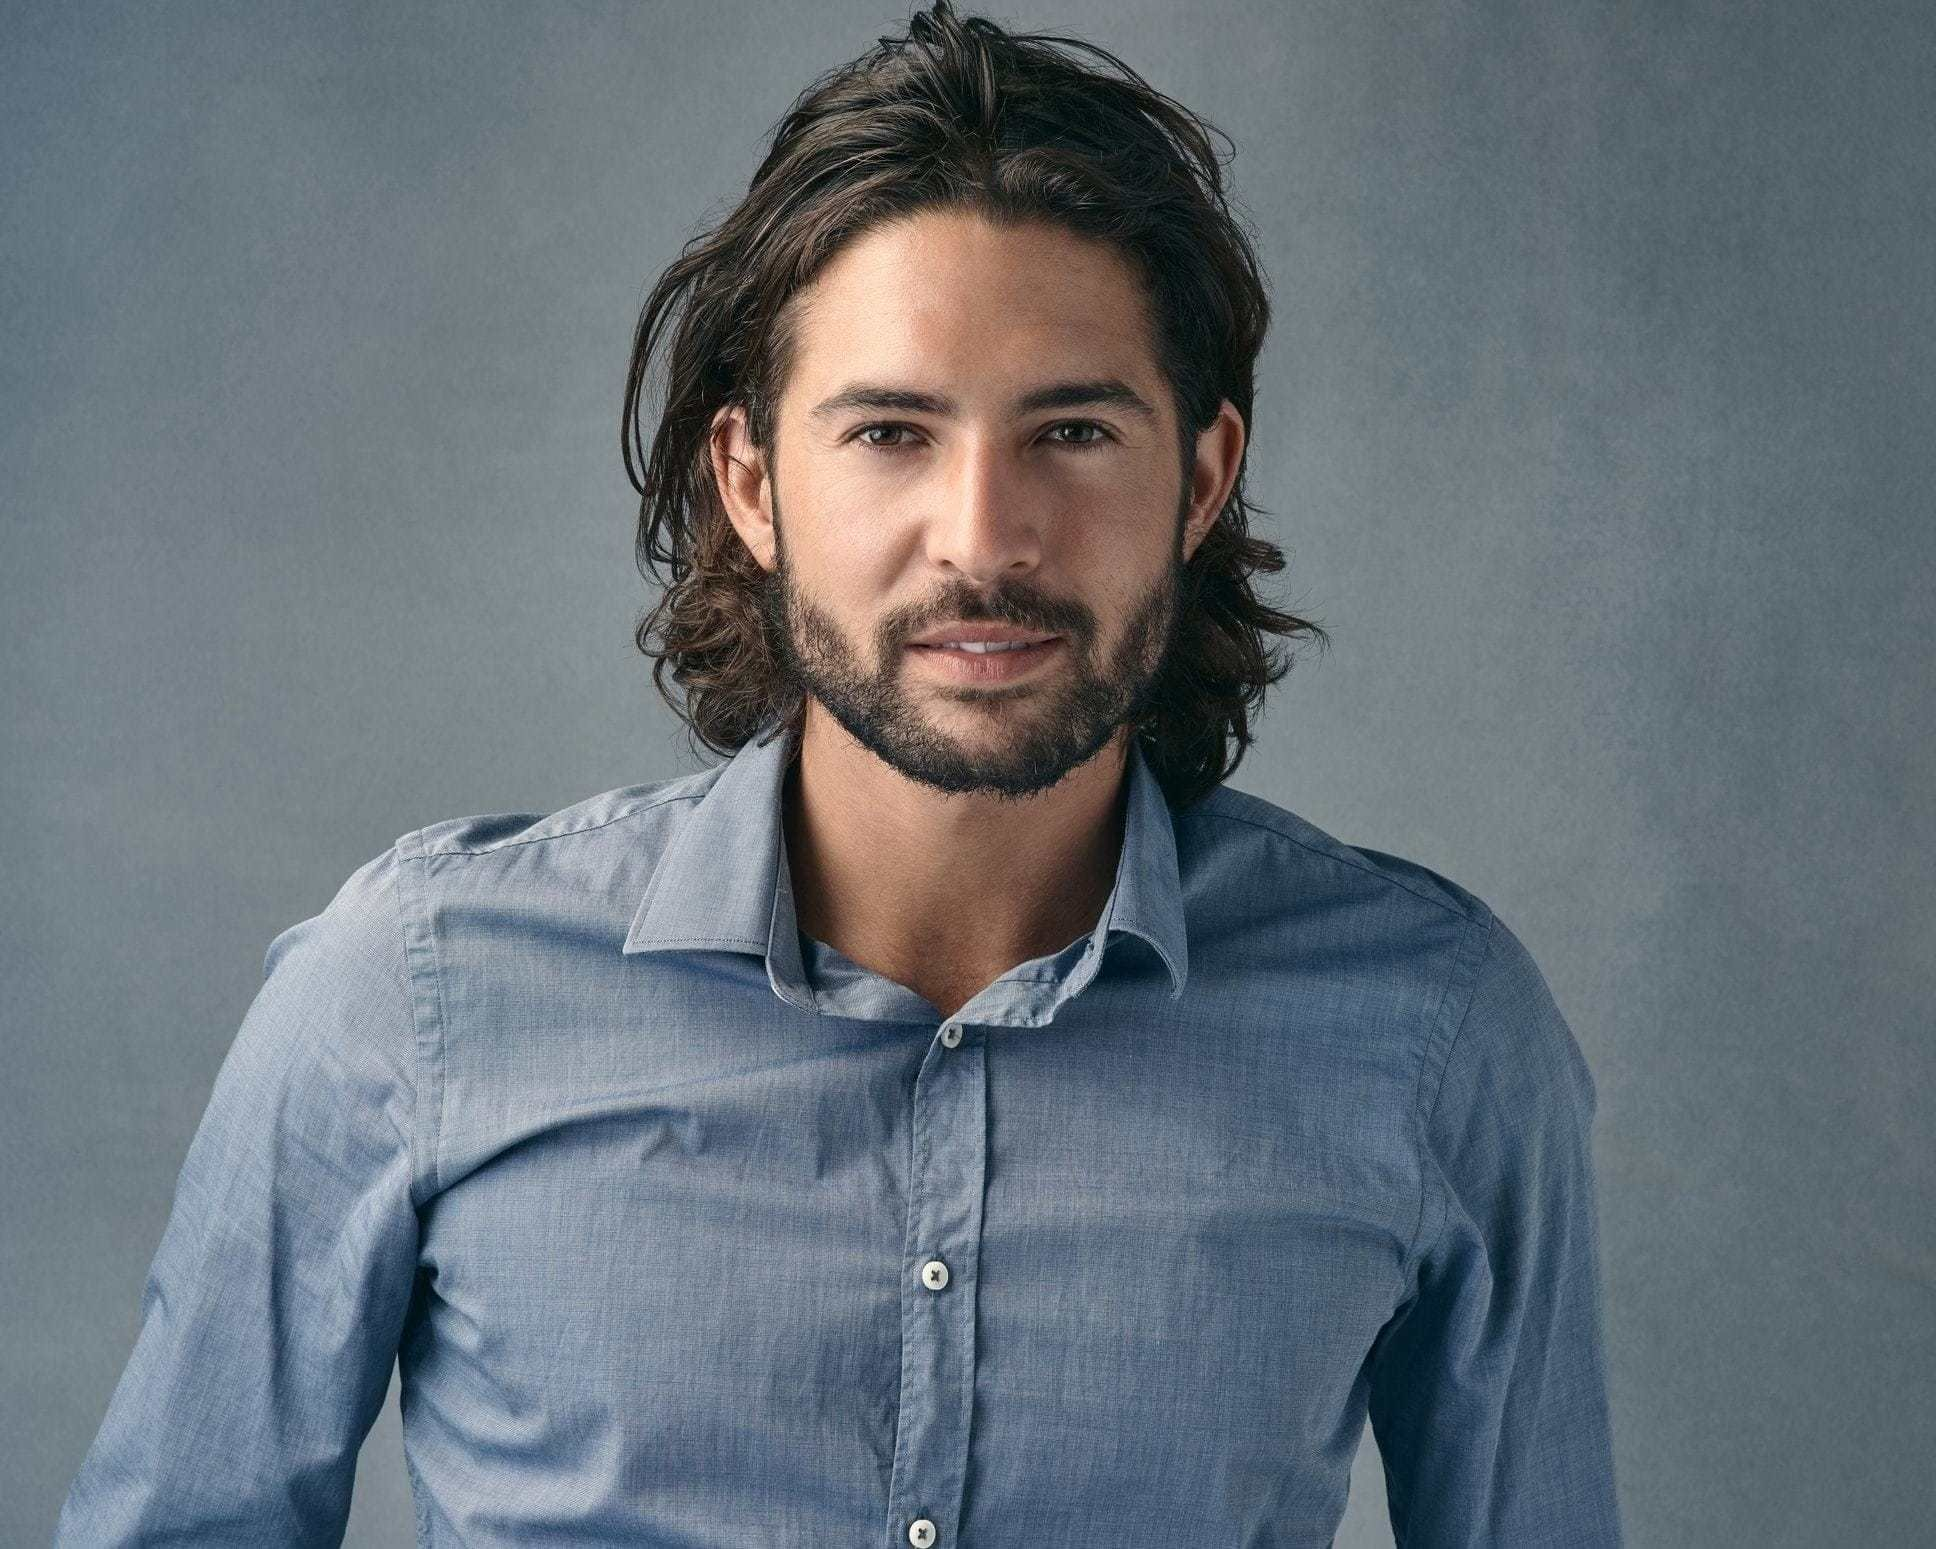 The Best Long Hairstyles For Men With Thick Hair 21 Easy Style Ideas Pictures